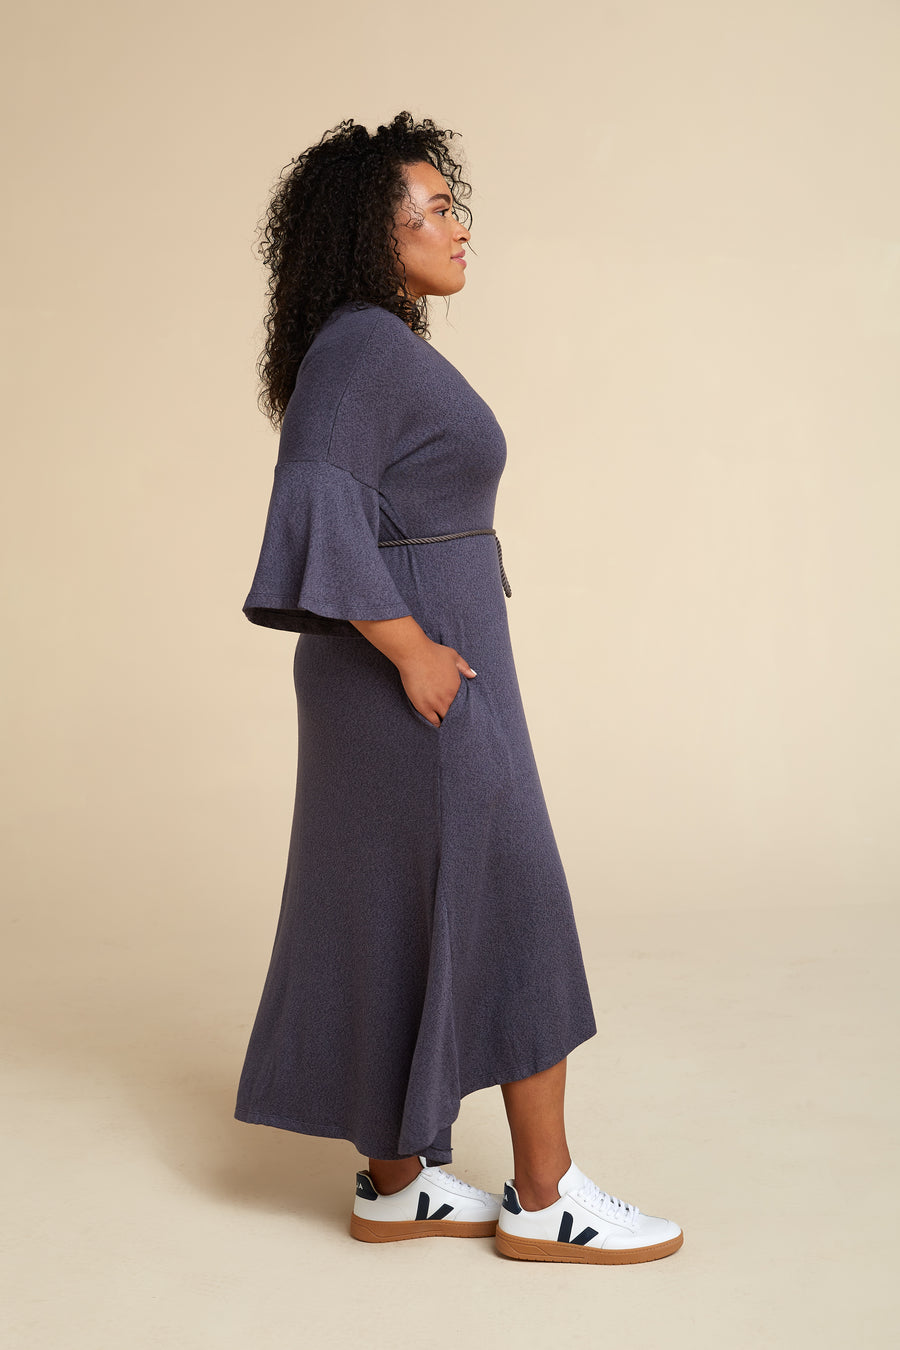 Model wearing Akala Clothing's sustainable Sweater Dress in Dusk color, size Large